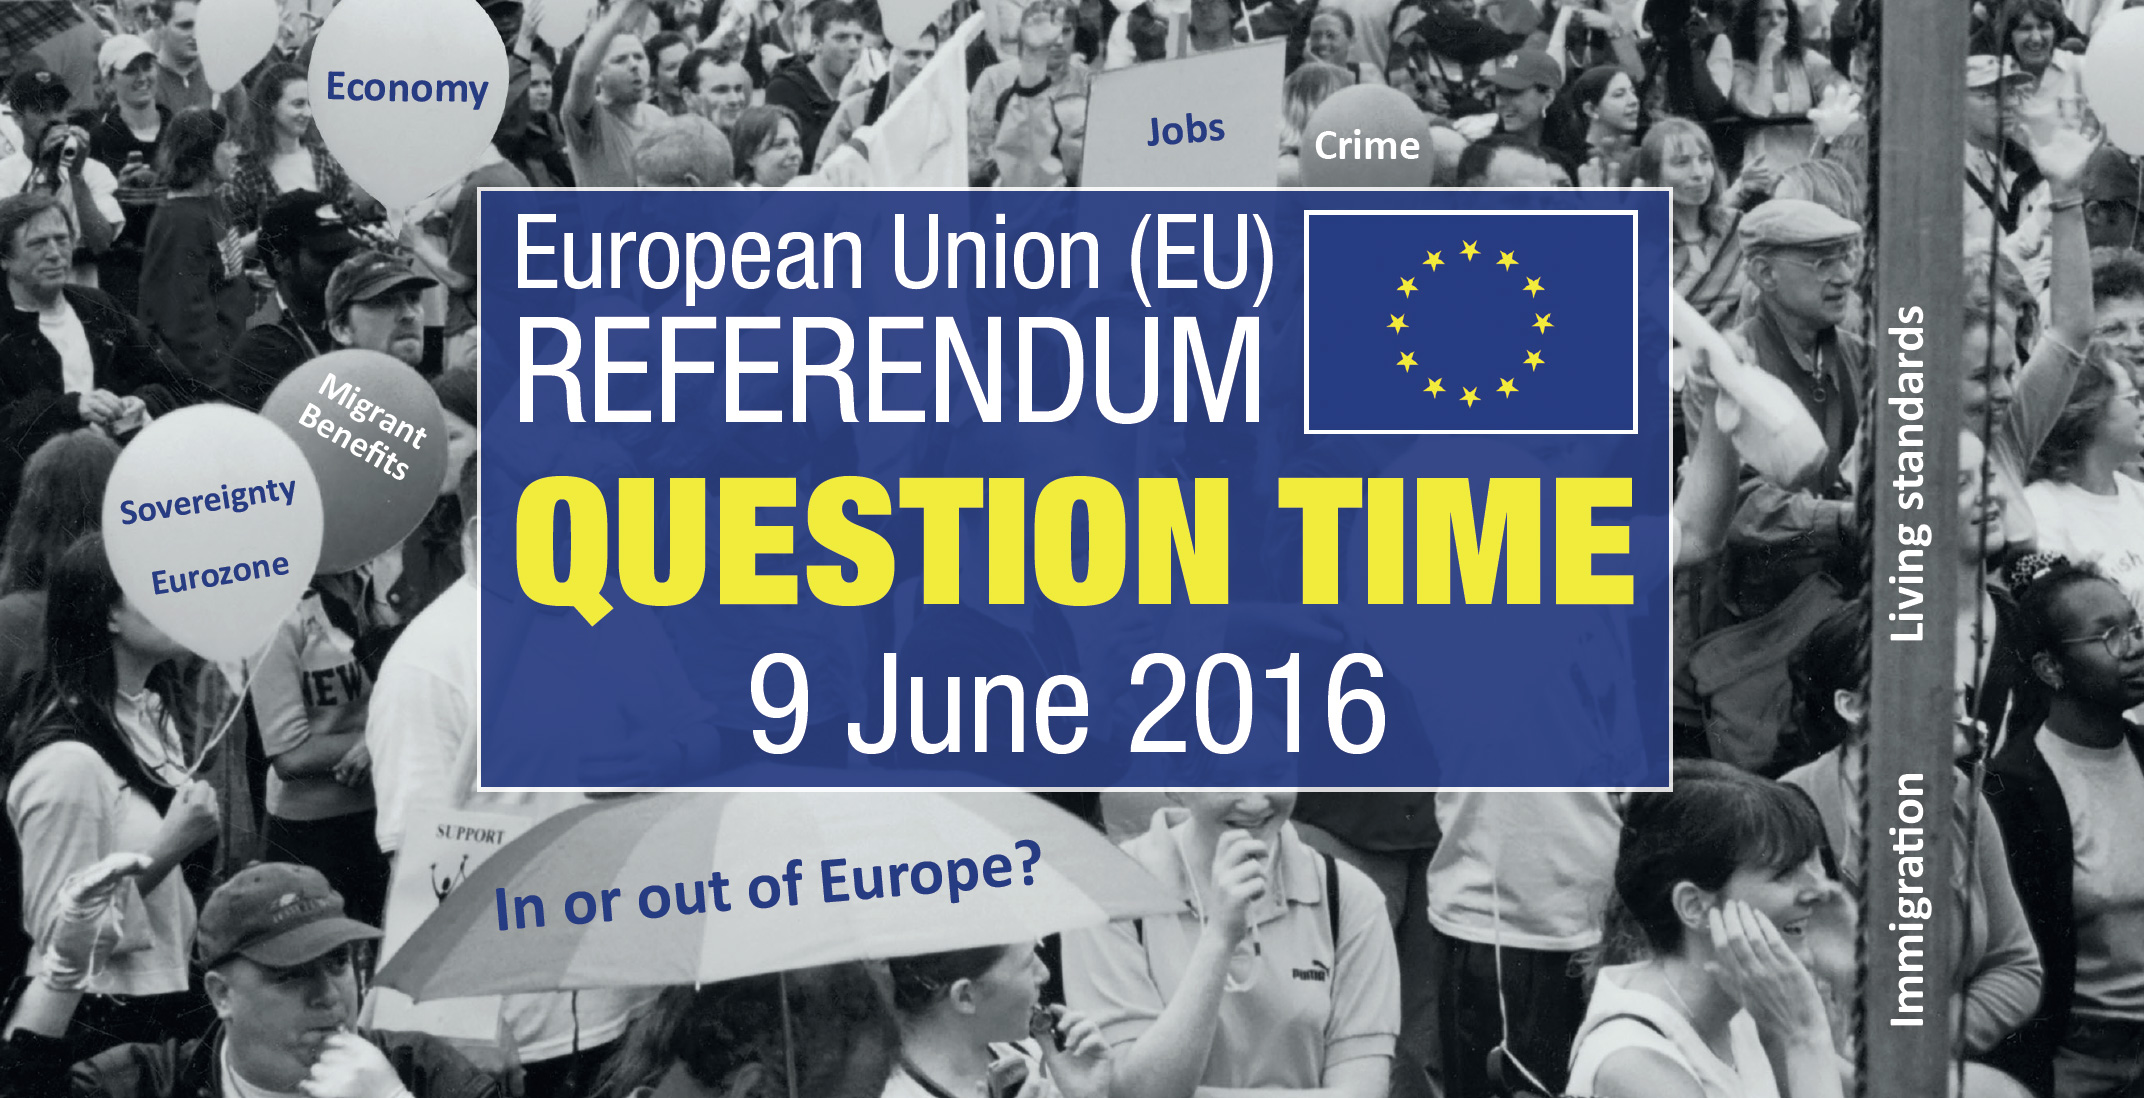 Uk eu referendum date in Perth